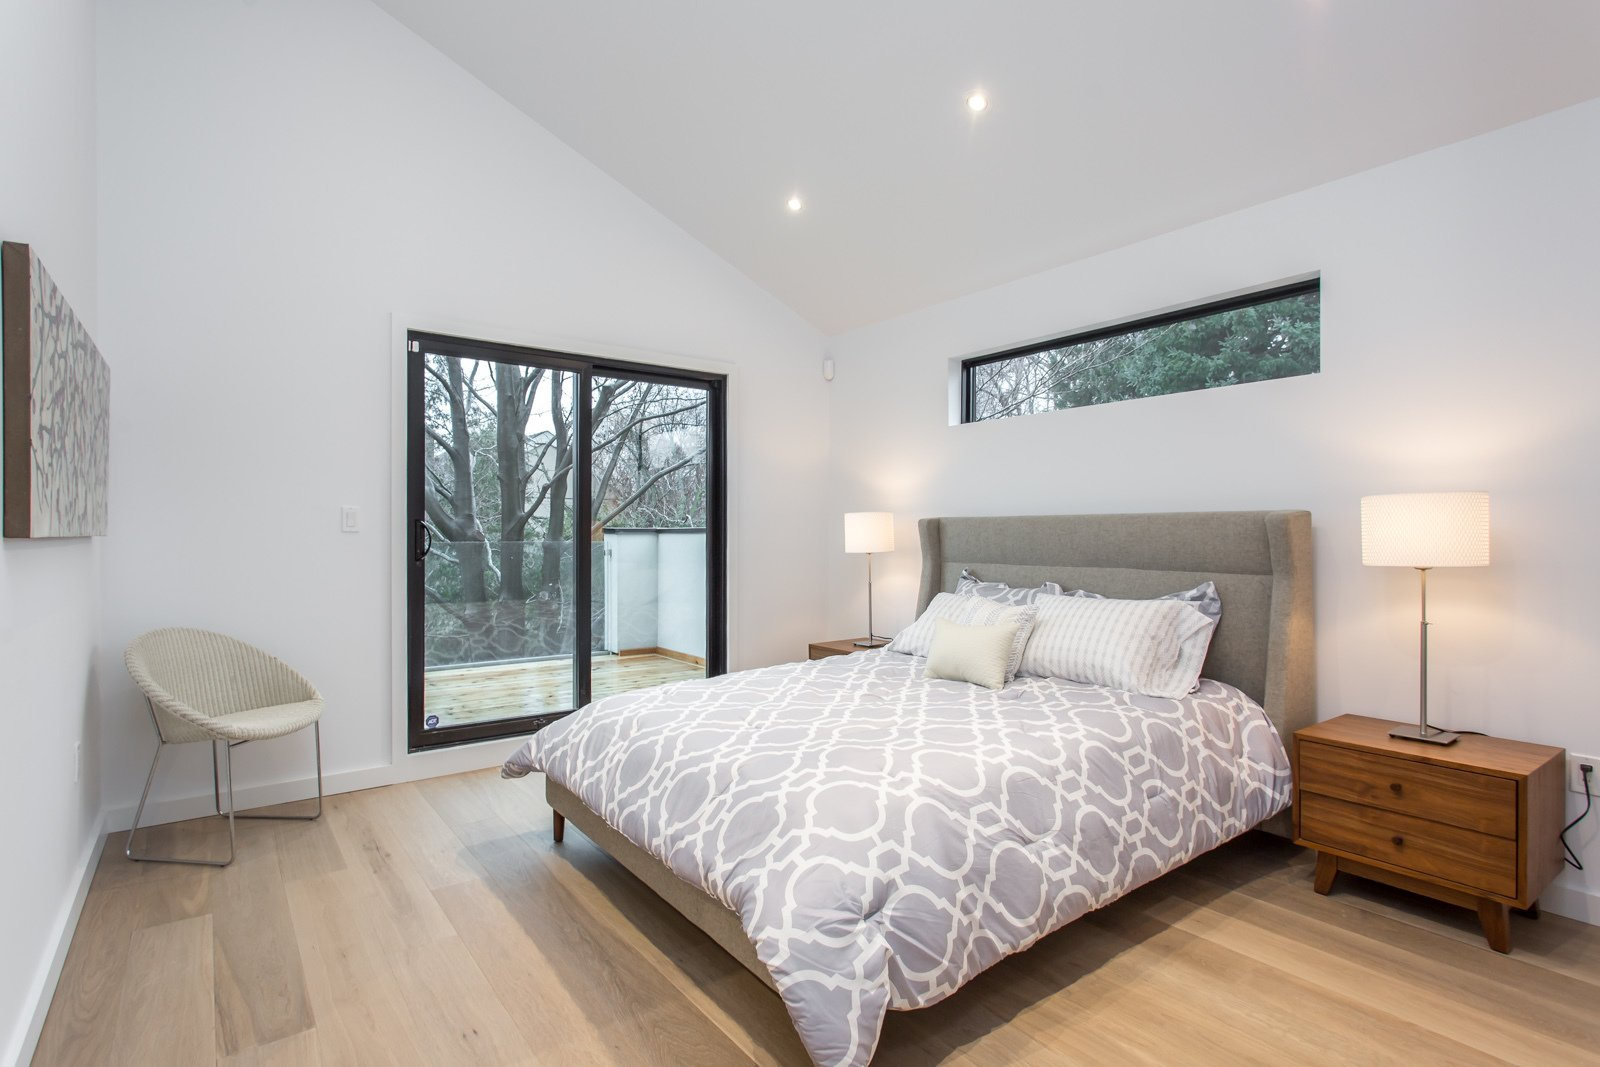 The master bedroom on the second floor with a walk out deck, overlooking the private backyard.   Manor Road house by Nathalie Thorel